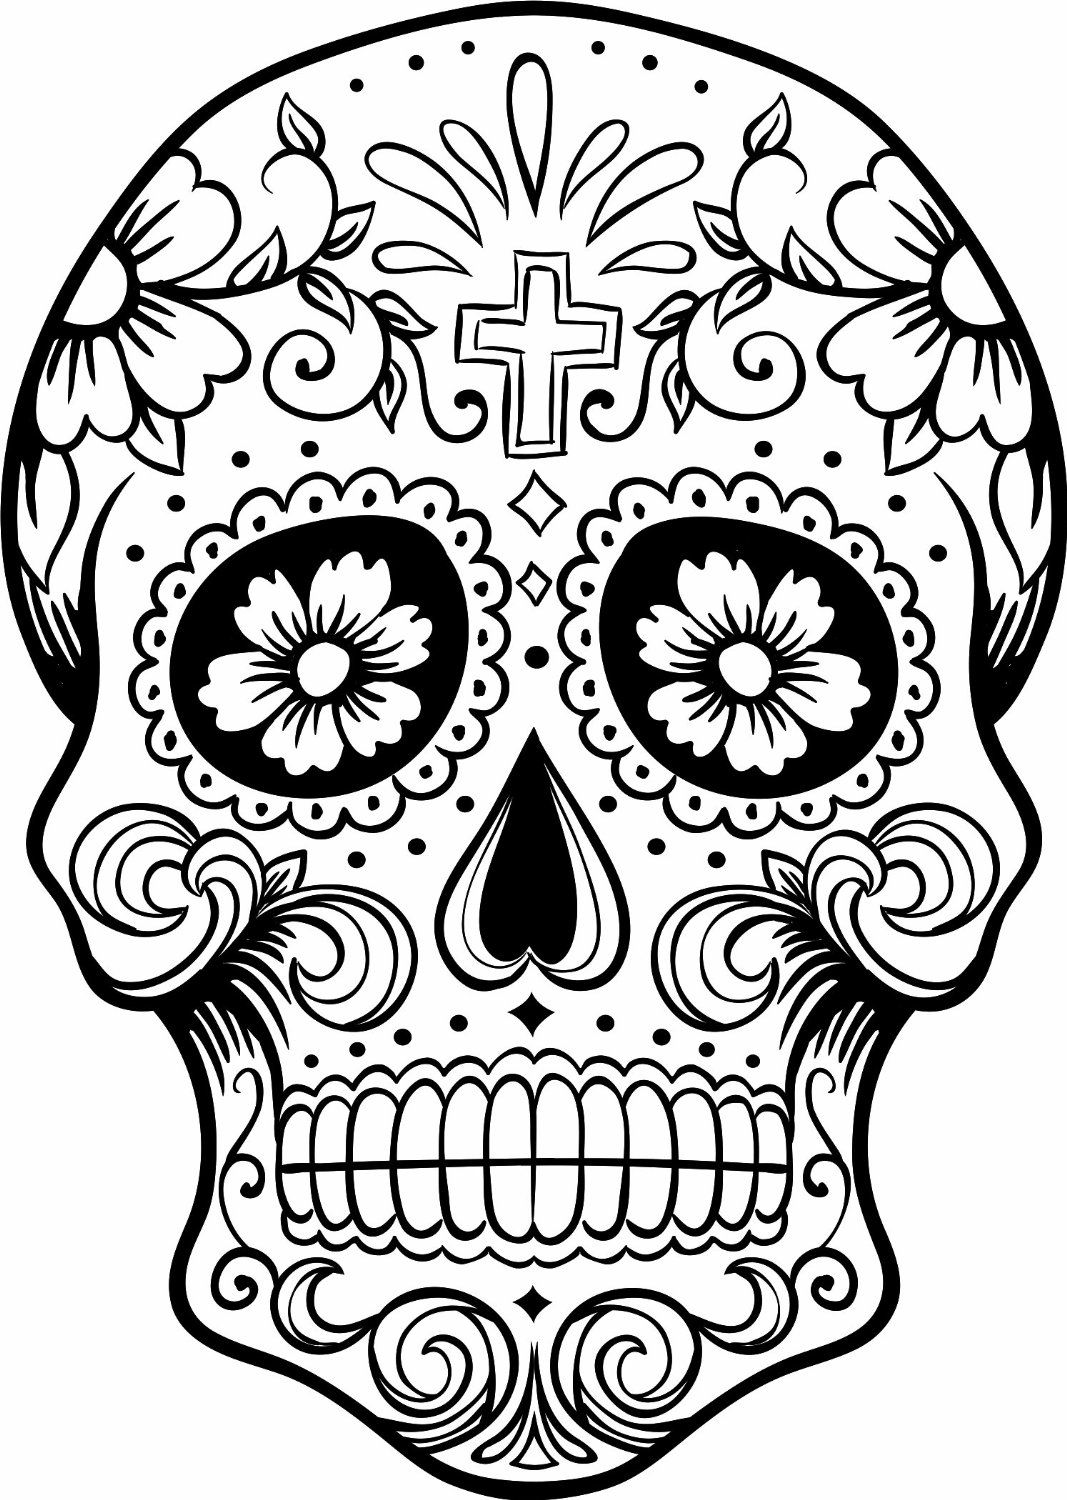 Sugar Skull Skull Coloring Pages, Skull, Sugar Skull Tattoos